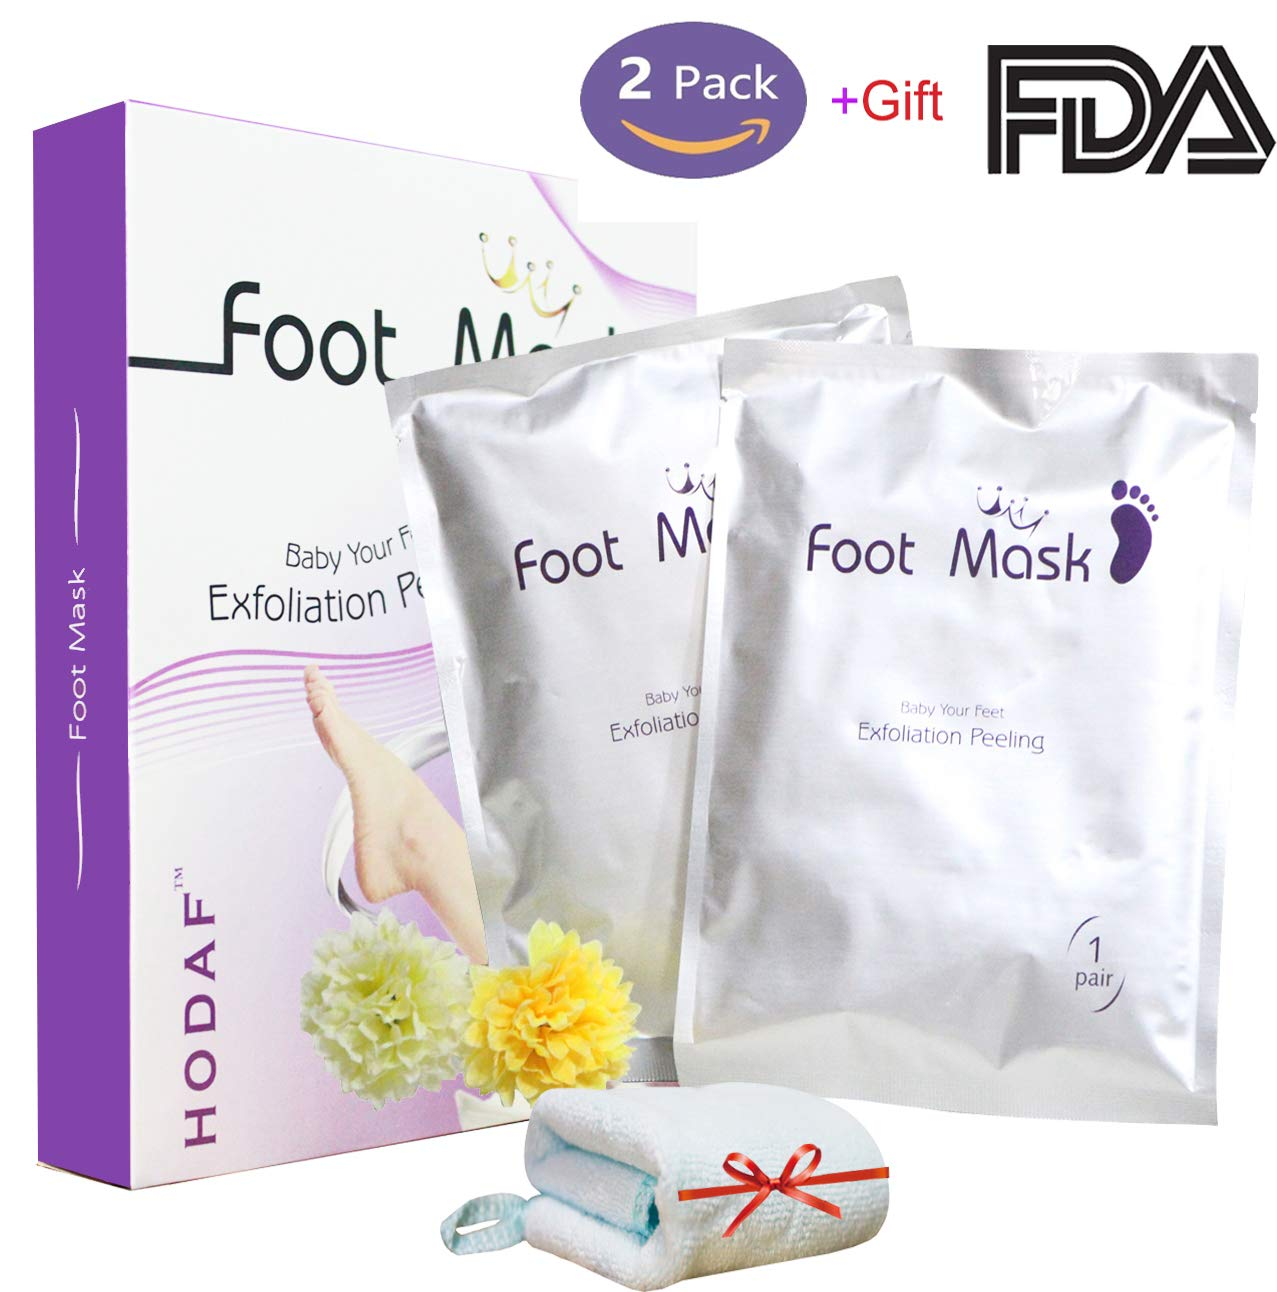 Foot Mask 2 Pack Exfoliating Foot Peel Mask with Gift Towel, Foot Peeling Mask,Baby Soft & Smooth Feet,Calluses and Dead Skin Remover/Healthy Soak Socks Booties for Men and Women